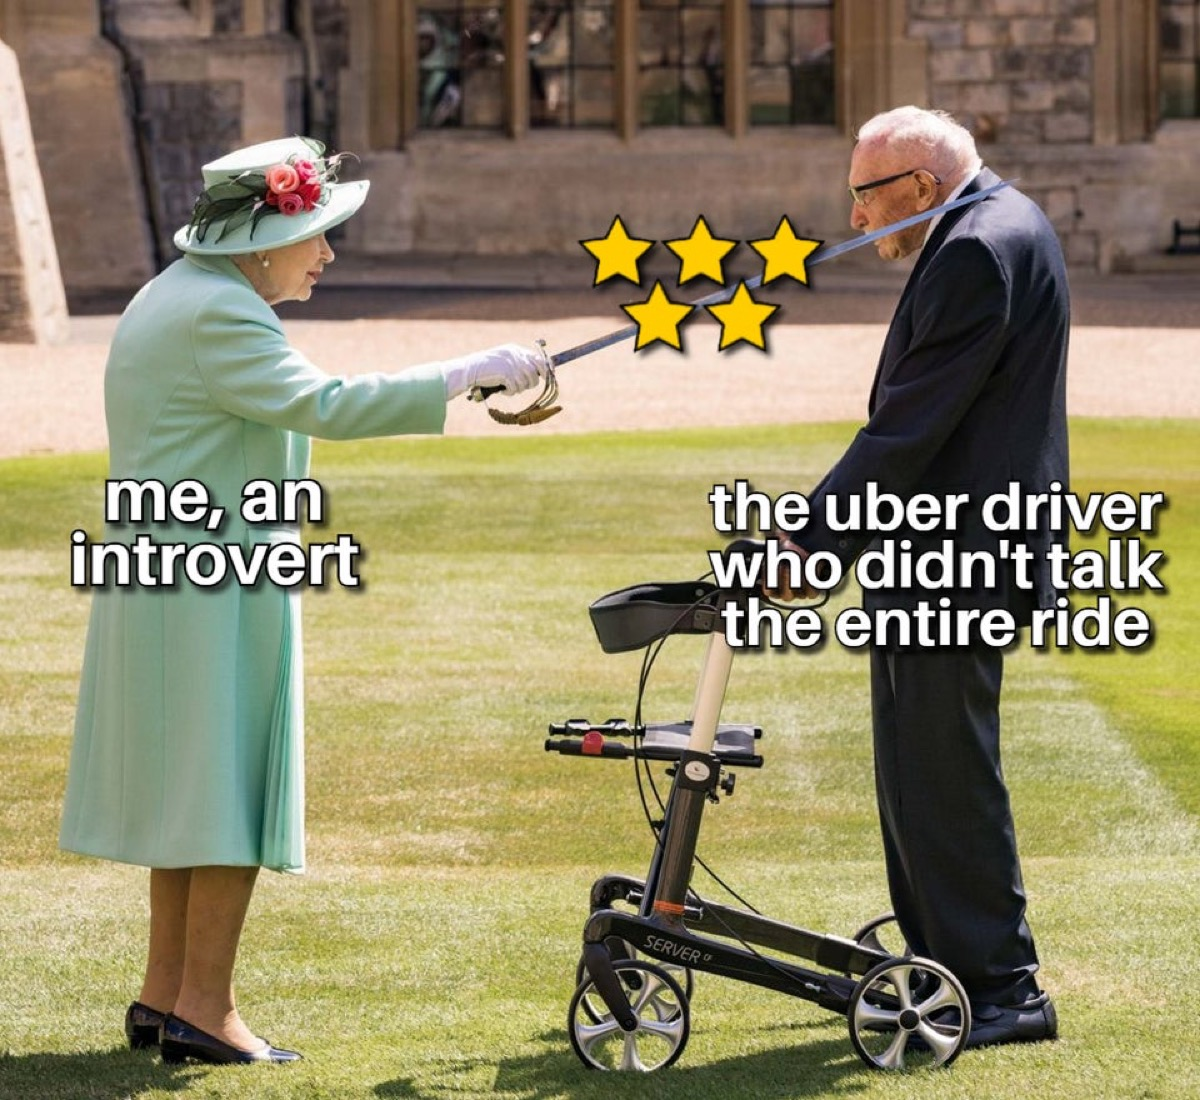 """Queen Elizabeth knighting a man with the captions, """"Me, an introvert."""" and """"the Uber driver who didn't talk the entire ride."""""""